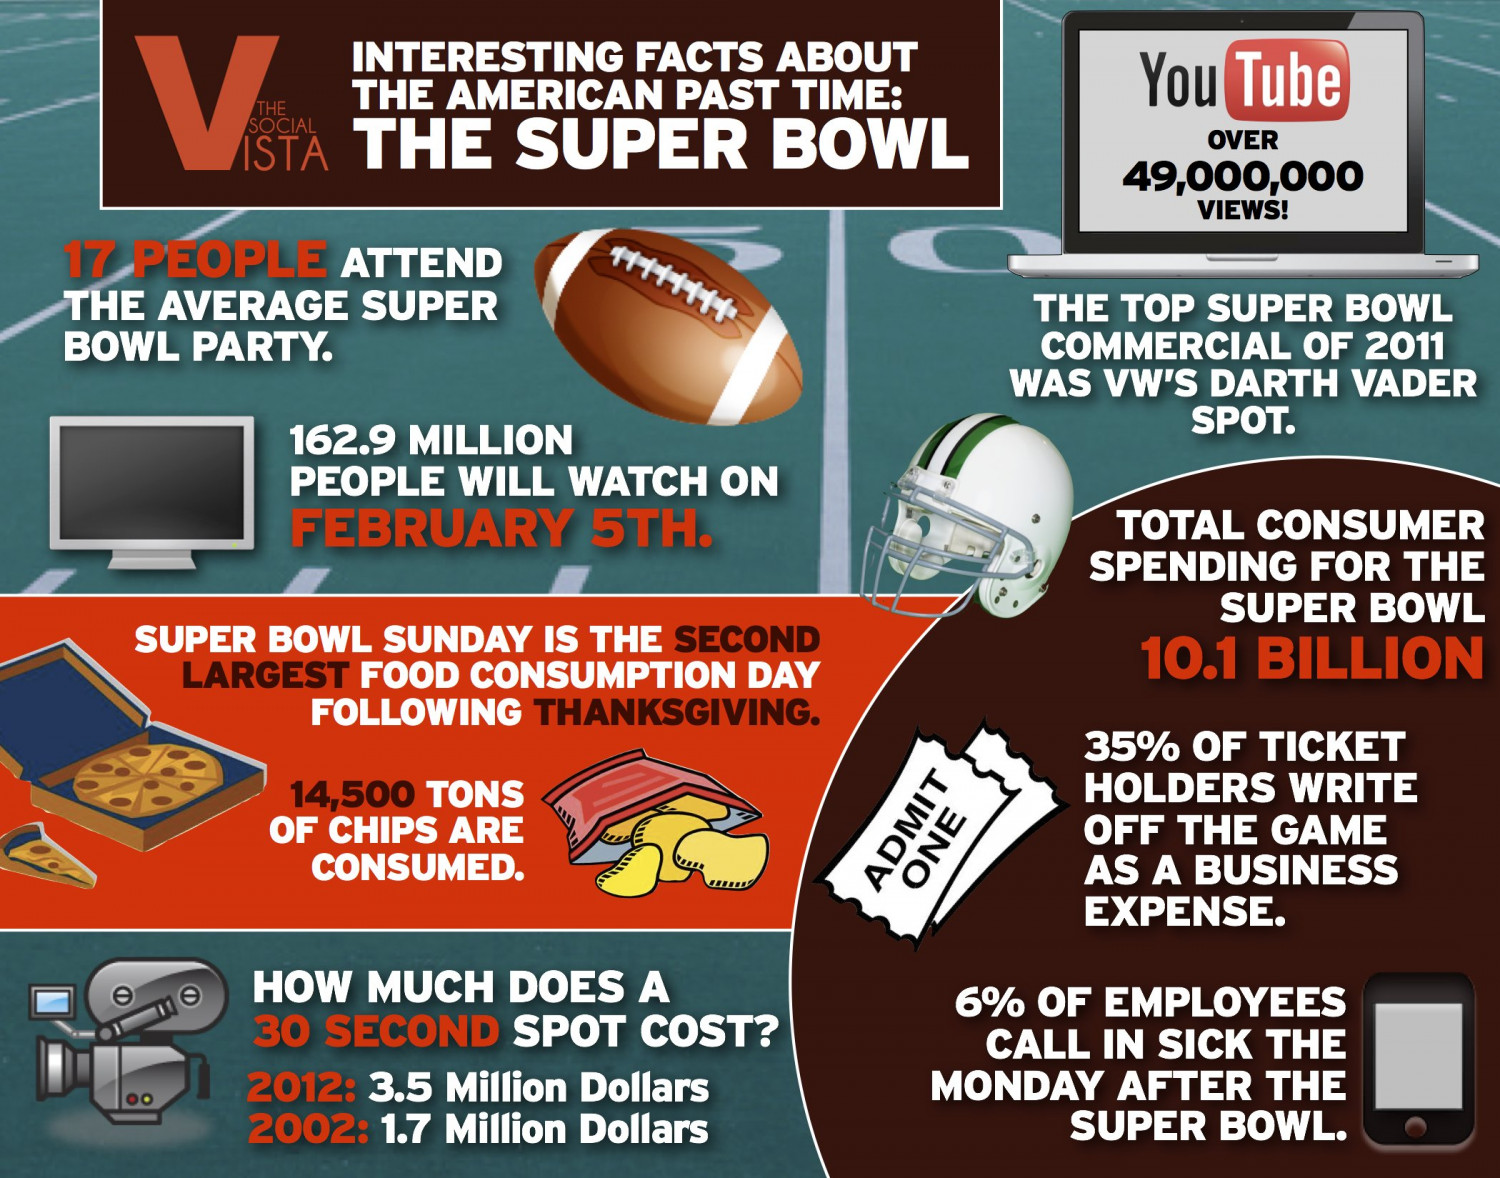 The Super Bowl: The American Past time Infographic